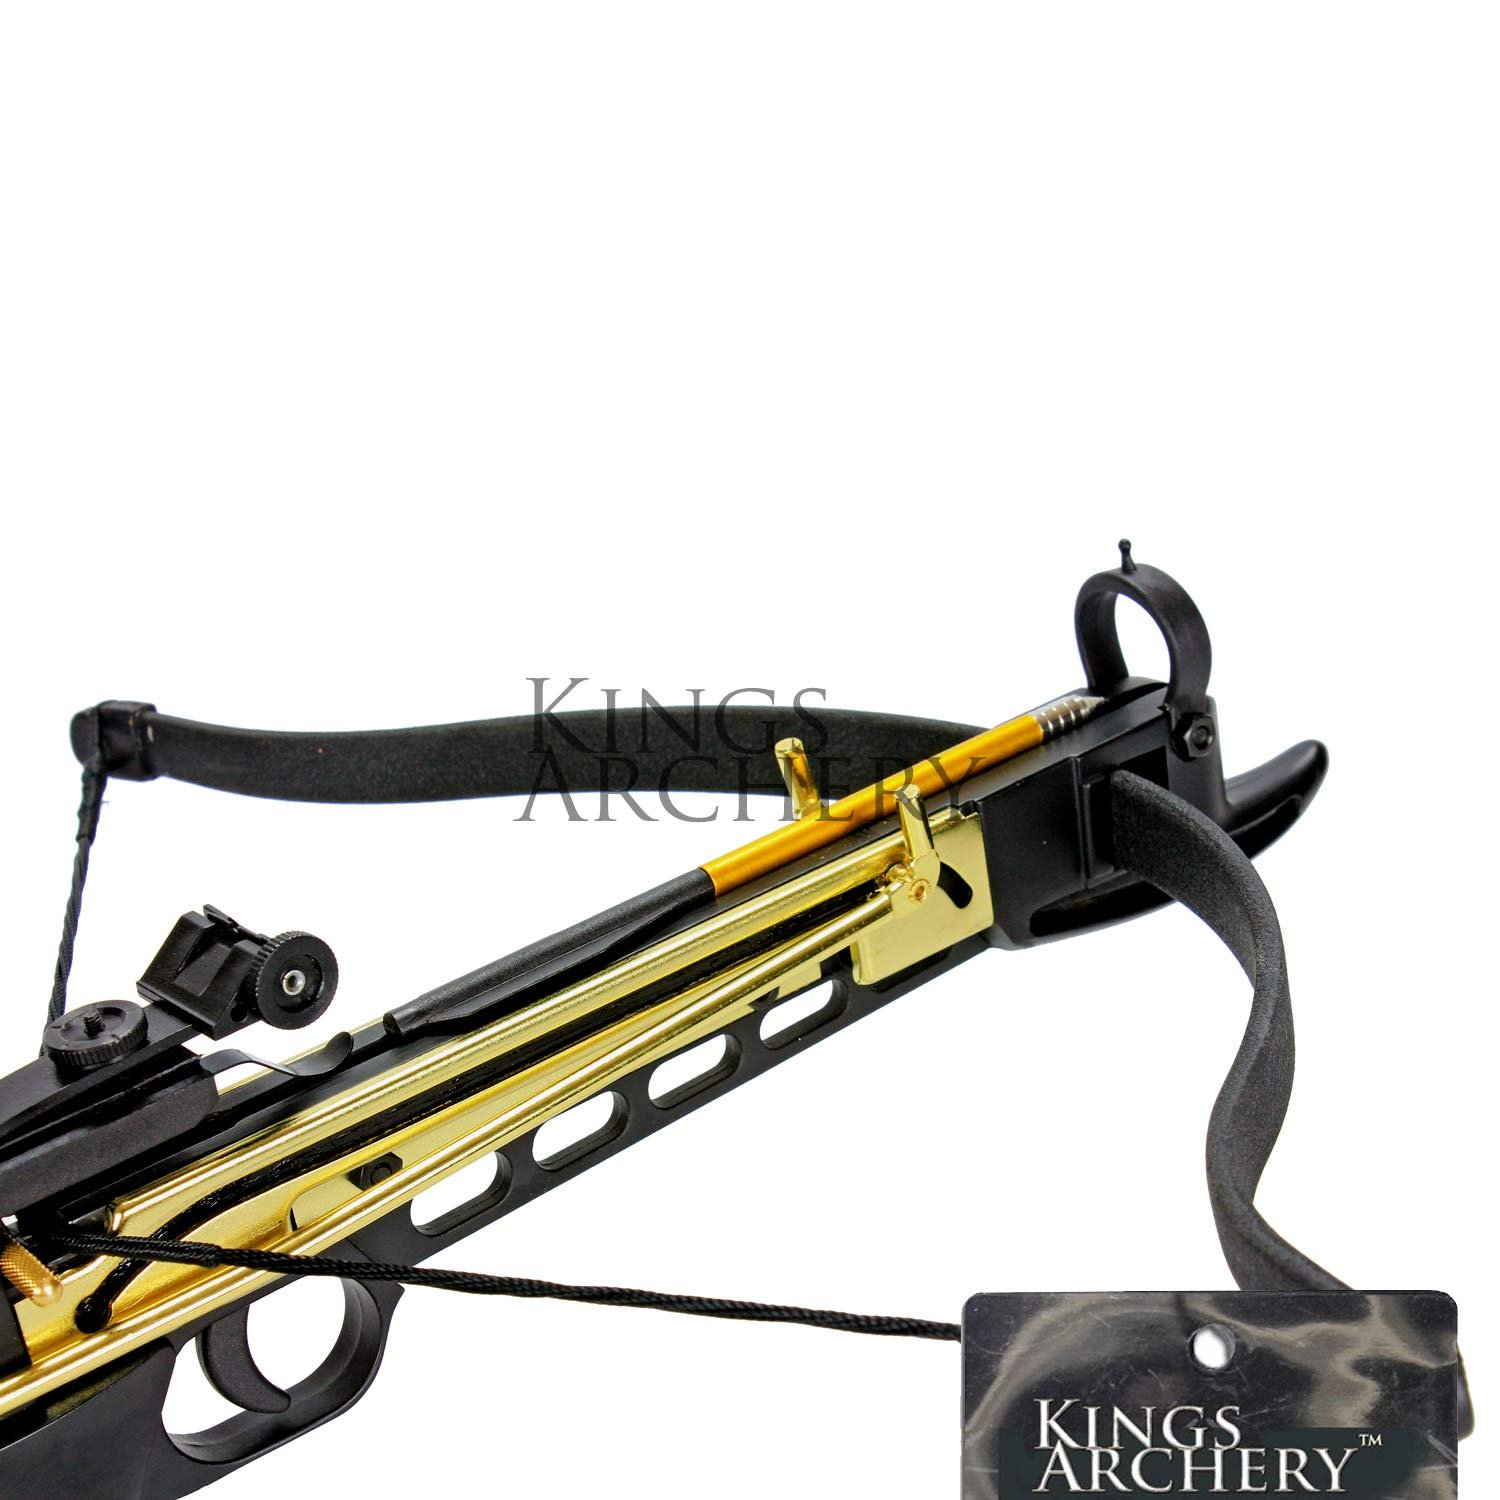 Crossbow Self-Cocking 80 LBS by KingsArchery® with Hunting Scope, 3 Aluminium Arrow Bolts, and Bonus 120-pack of Colored PVC Arrow Bolts + KingsArchery® Warranty by KingsArchery (Image #9)